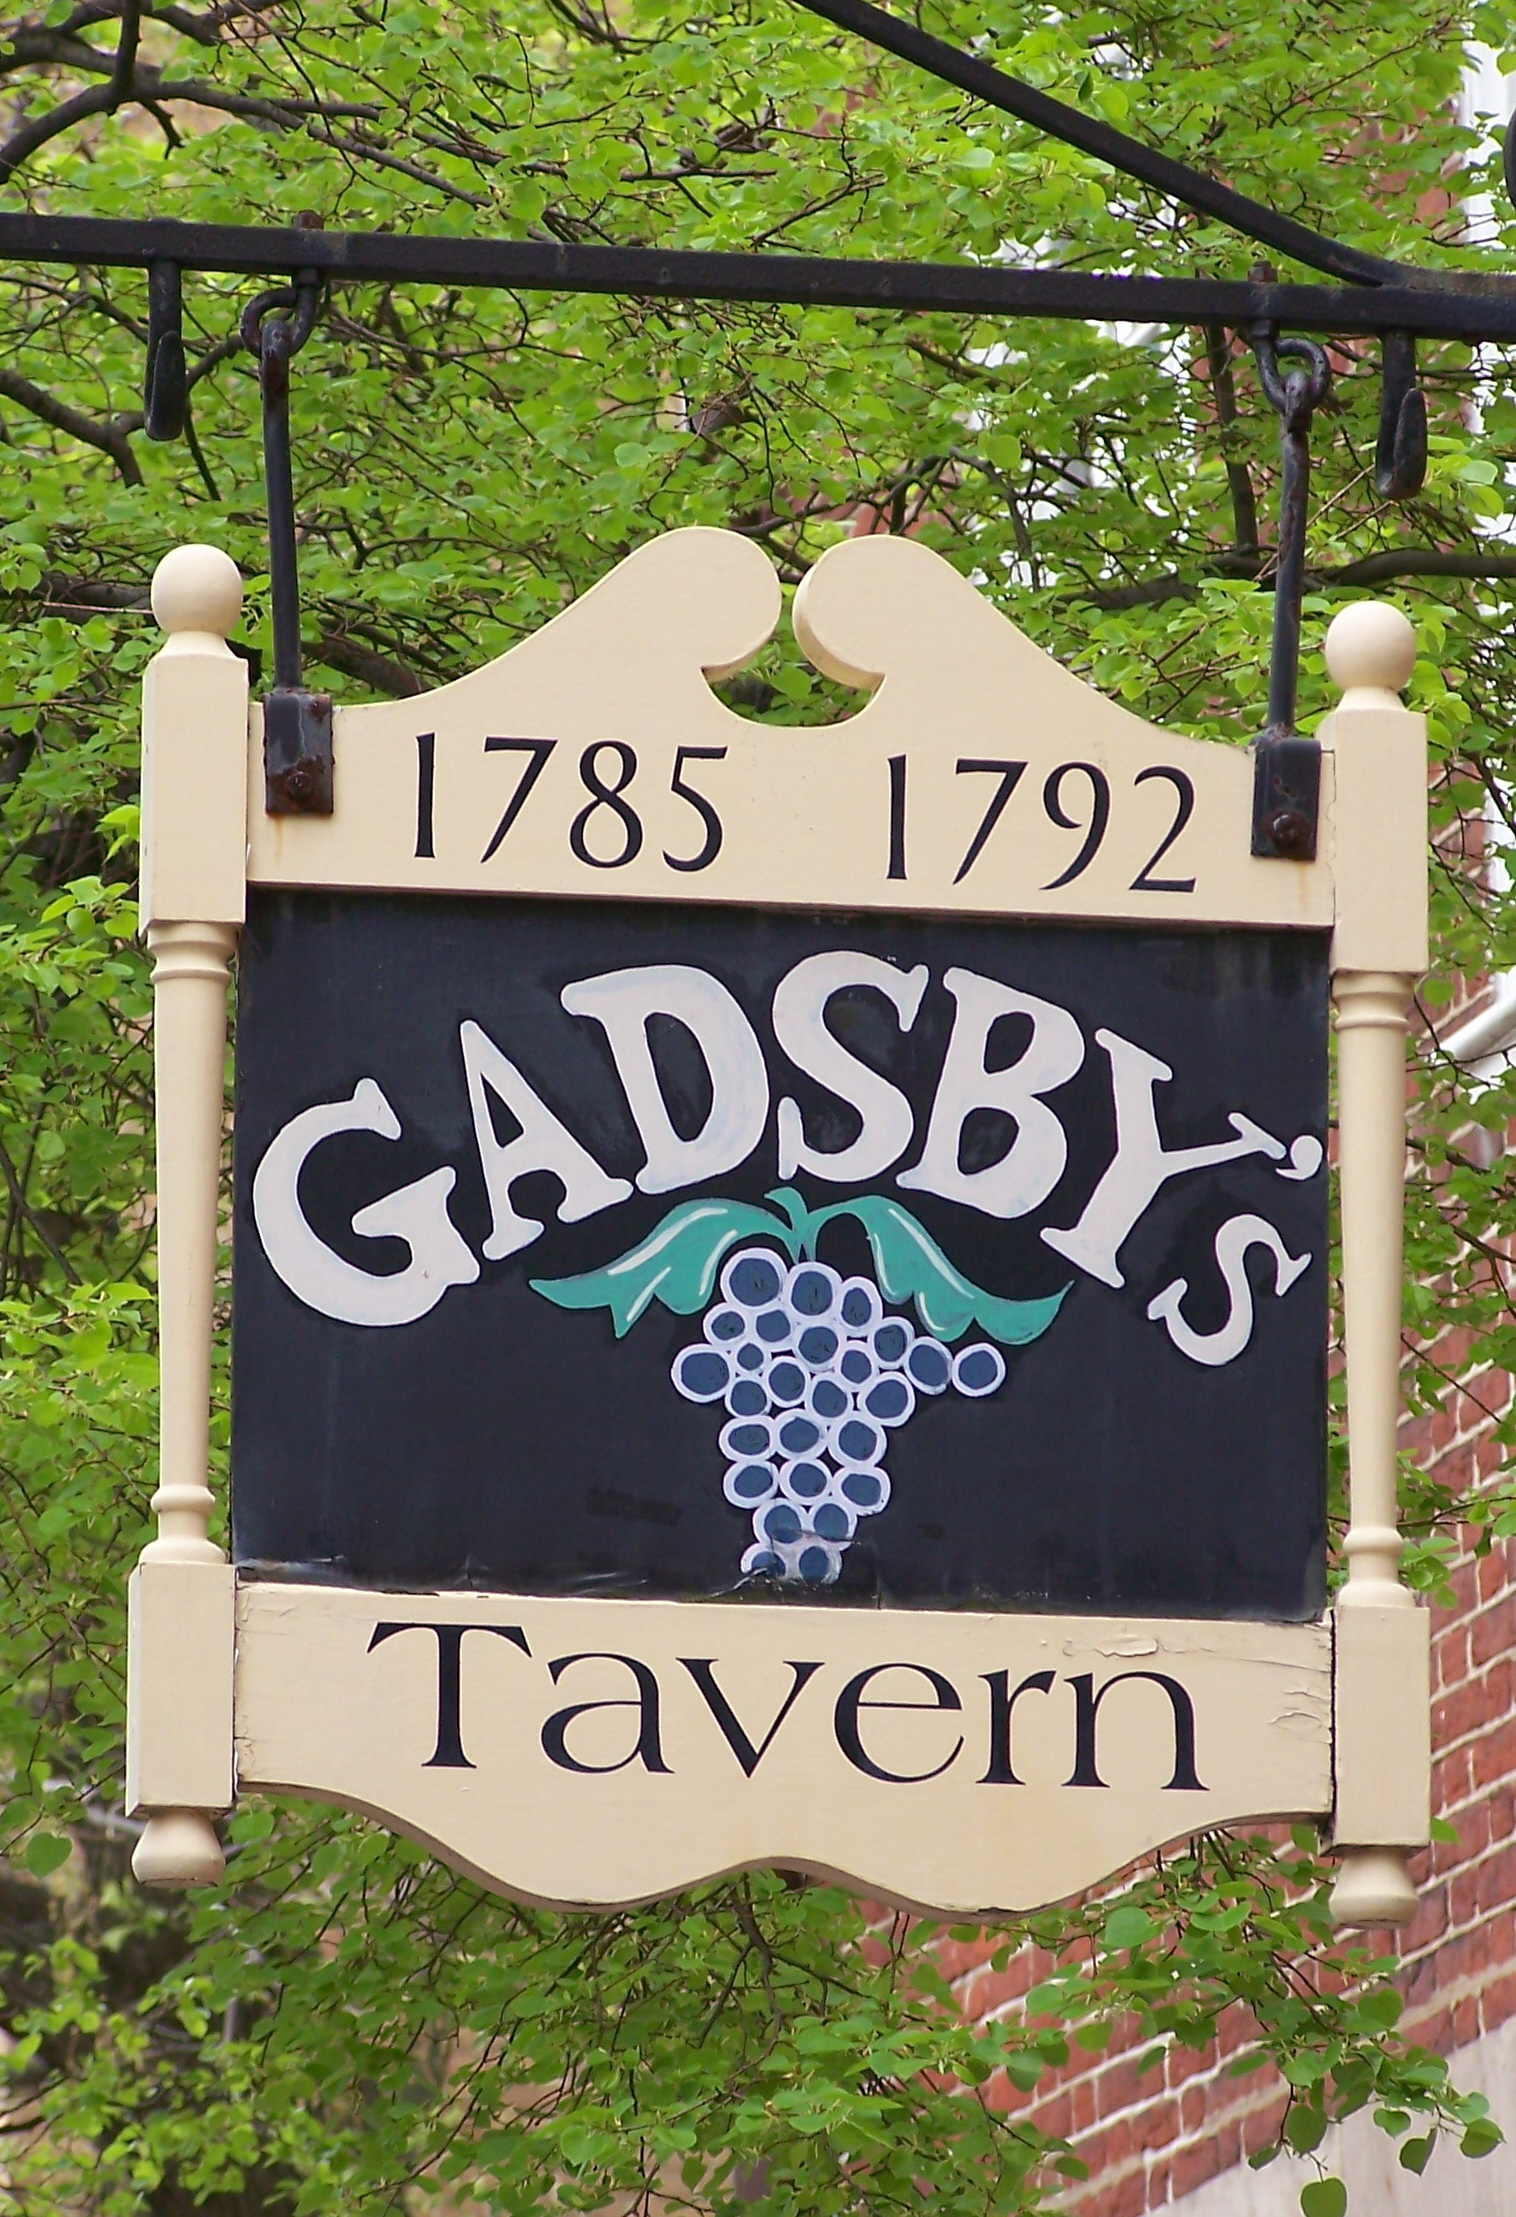 Gadsby's Tavern and Museum sign. Image by Sabreguy29 - Own work, CC BY-SA 3.0, https://commons.wikimedia.org/w/index.php?curid=4532272